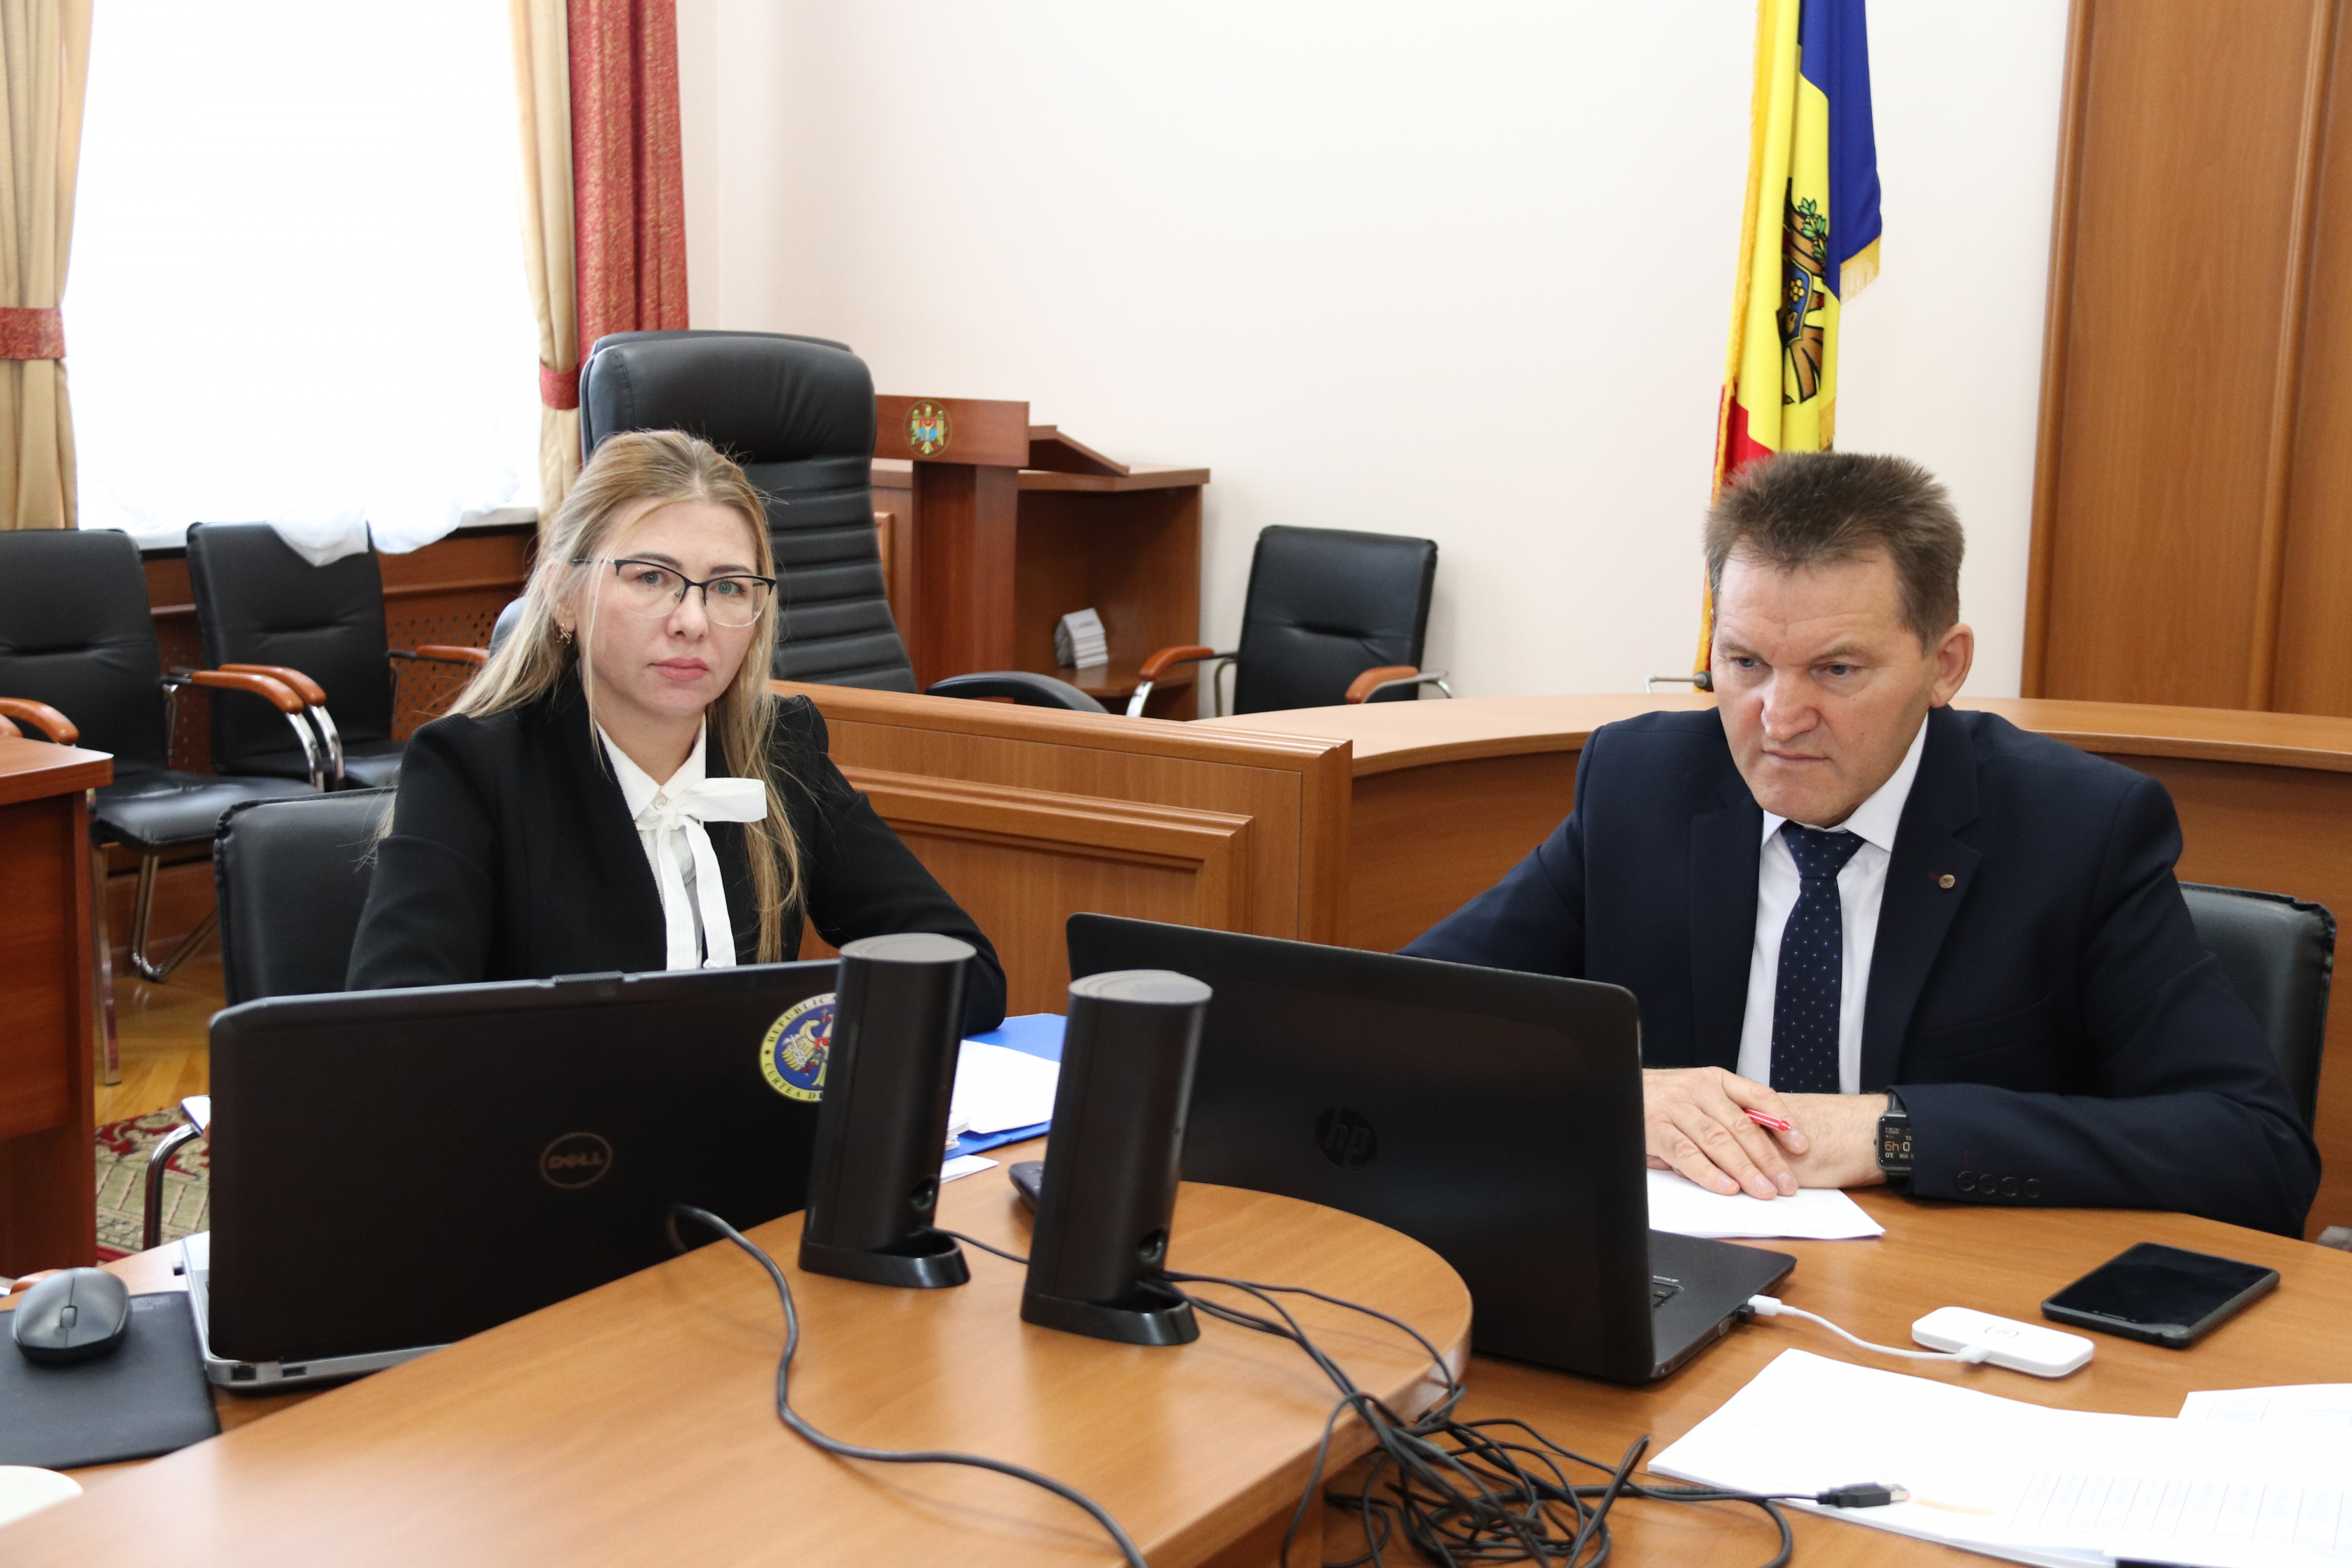 On September 10, the Court of Accounts of the Republic of Moldova (CoARM) examined during an online meeting the Audit Report on the compliance of public procurement within the system of the Ministry of Internal Affairs (MIA) in 2019-2020.